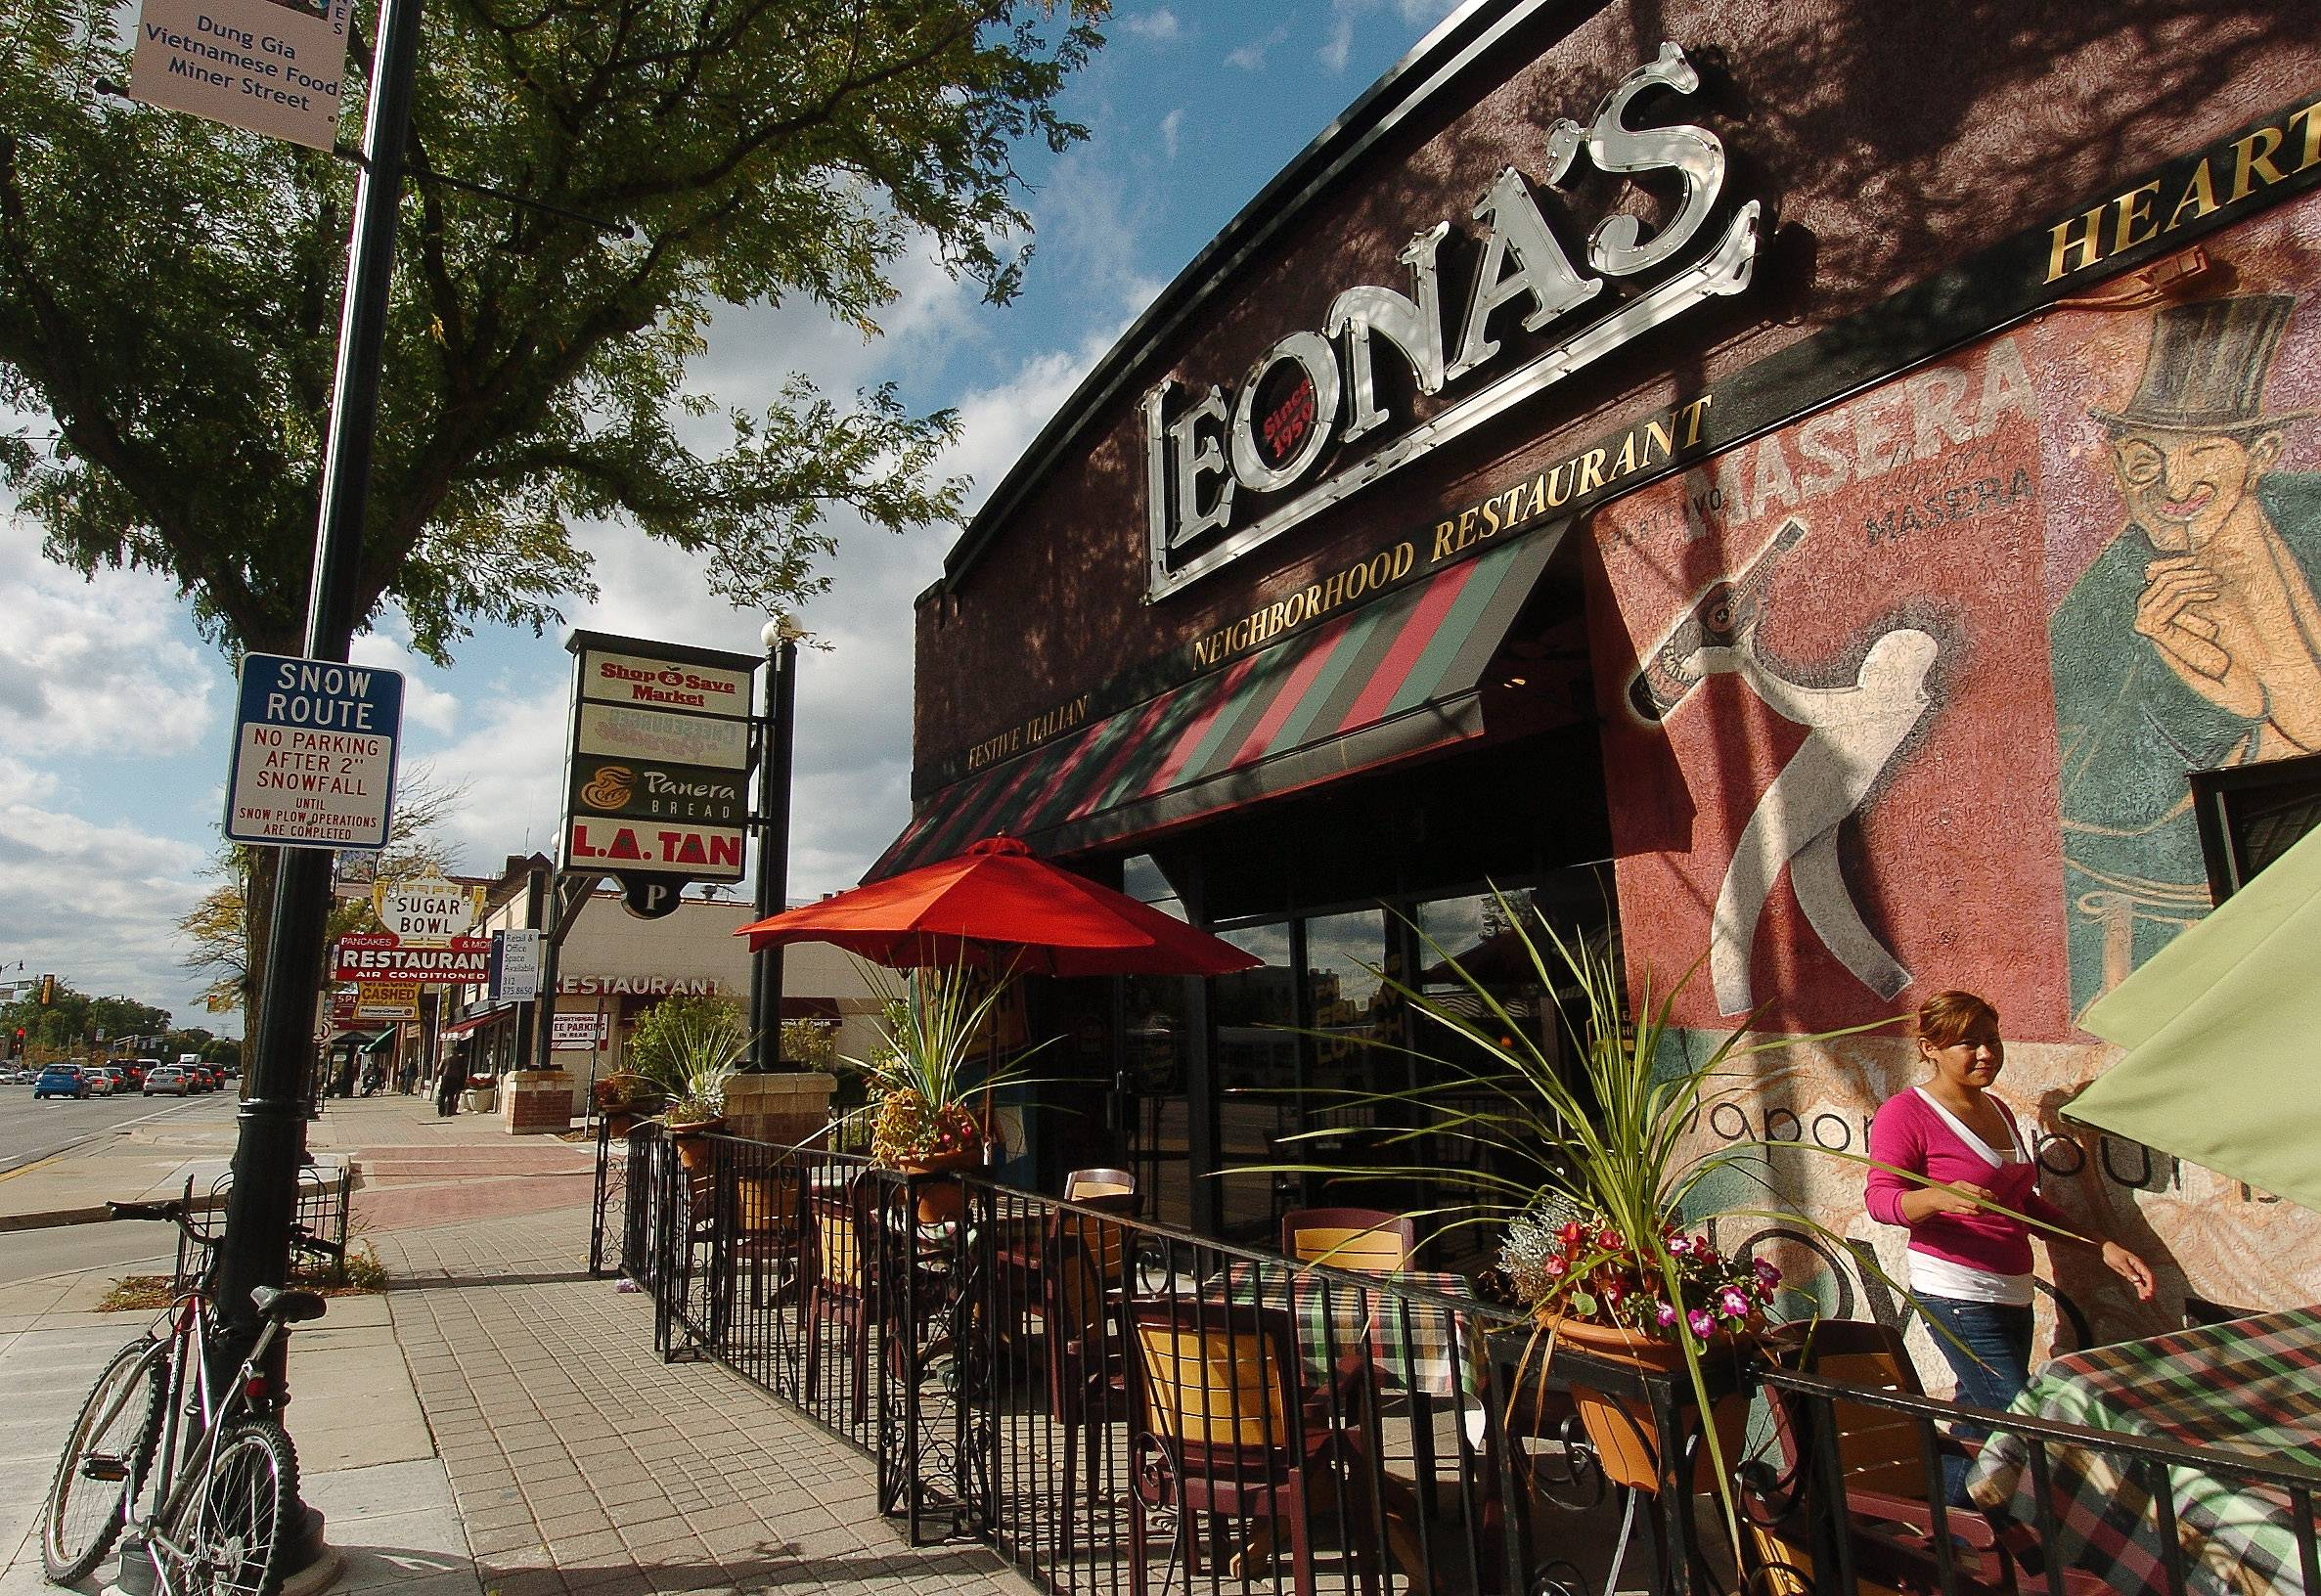 This Leona's Restaurant on Route 14 in Des Plaines soon will be getting another suburban restaurant in Elk Grove Village.